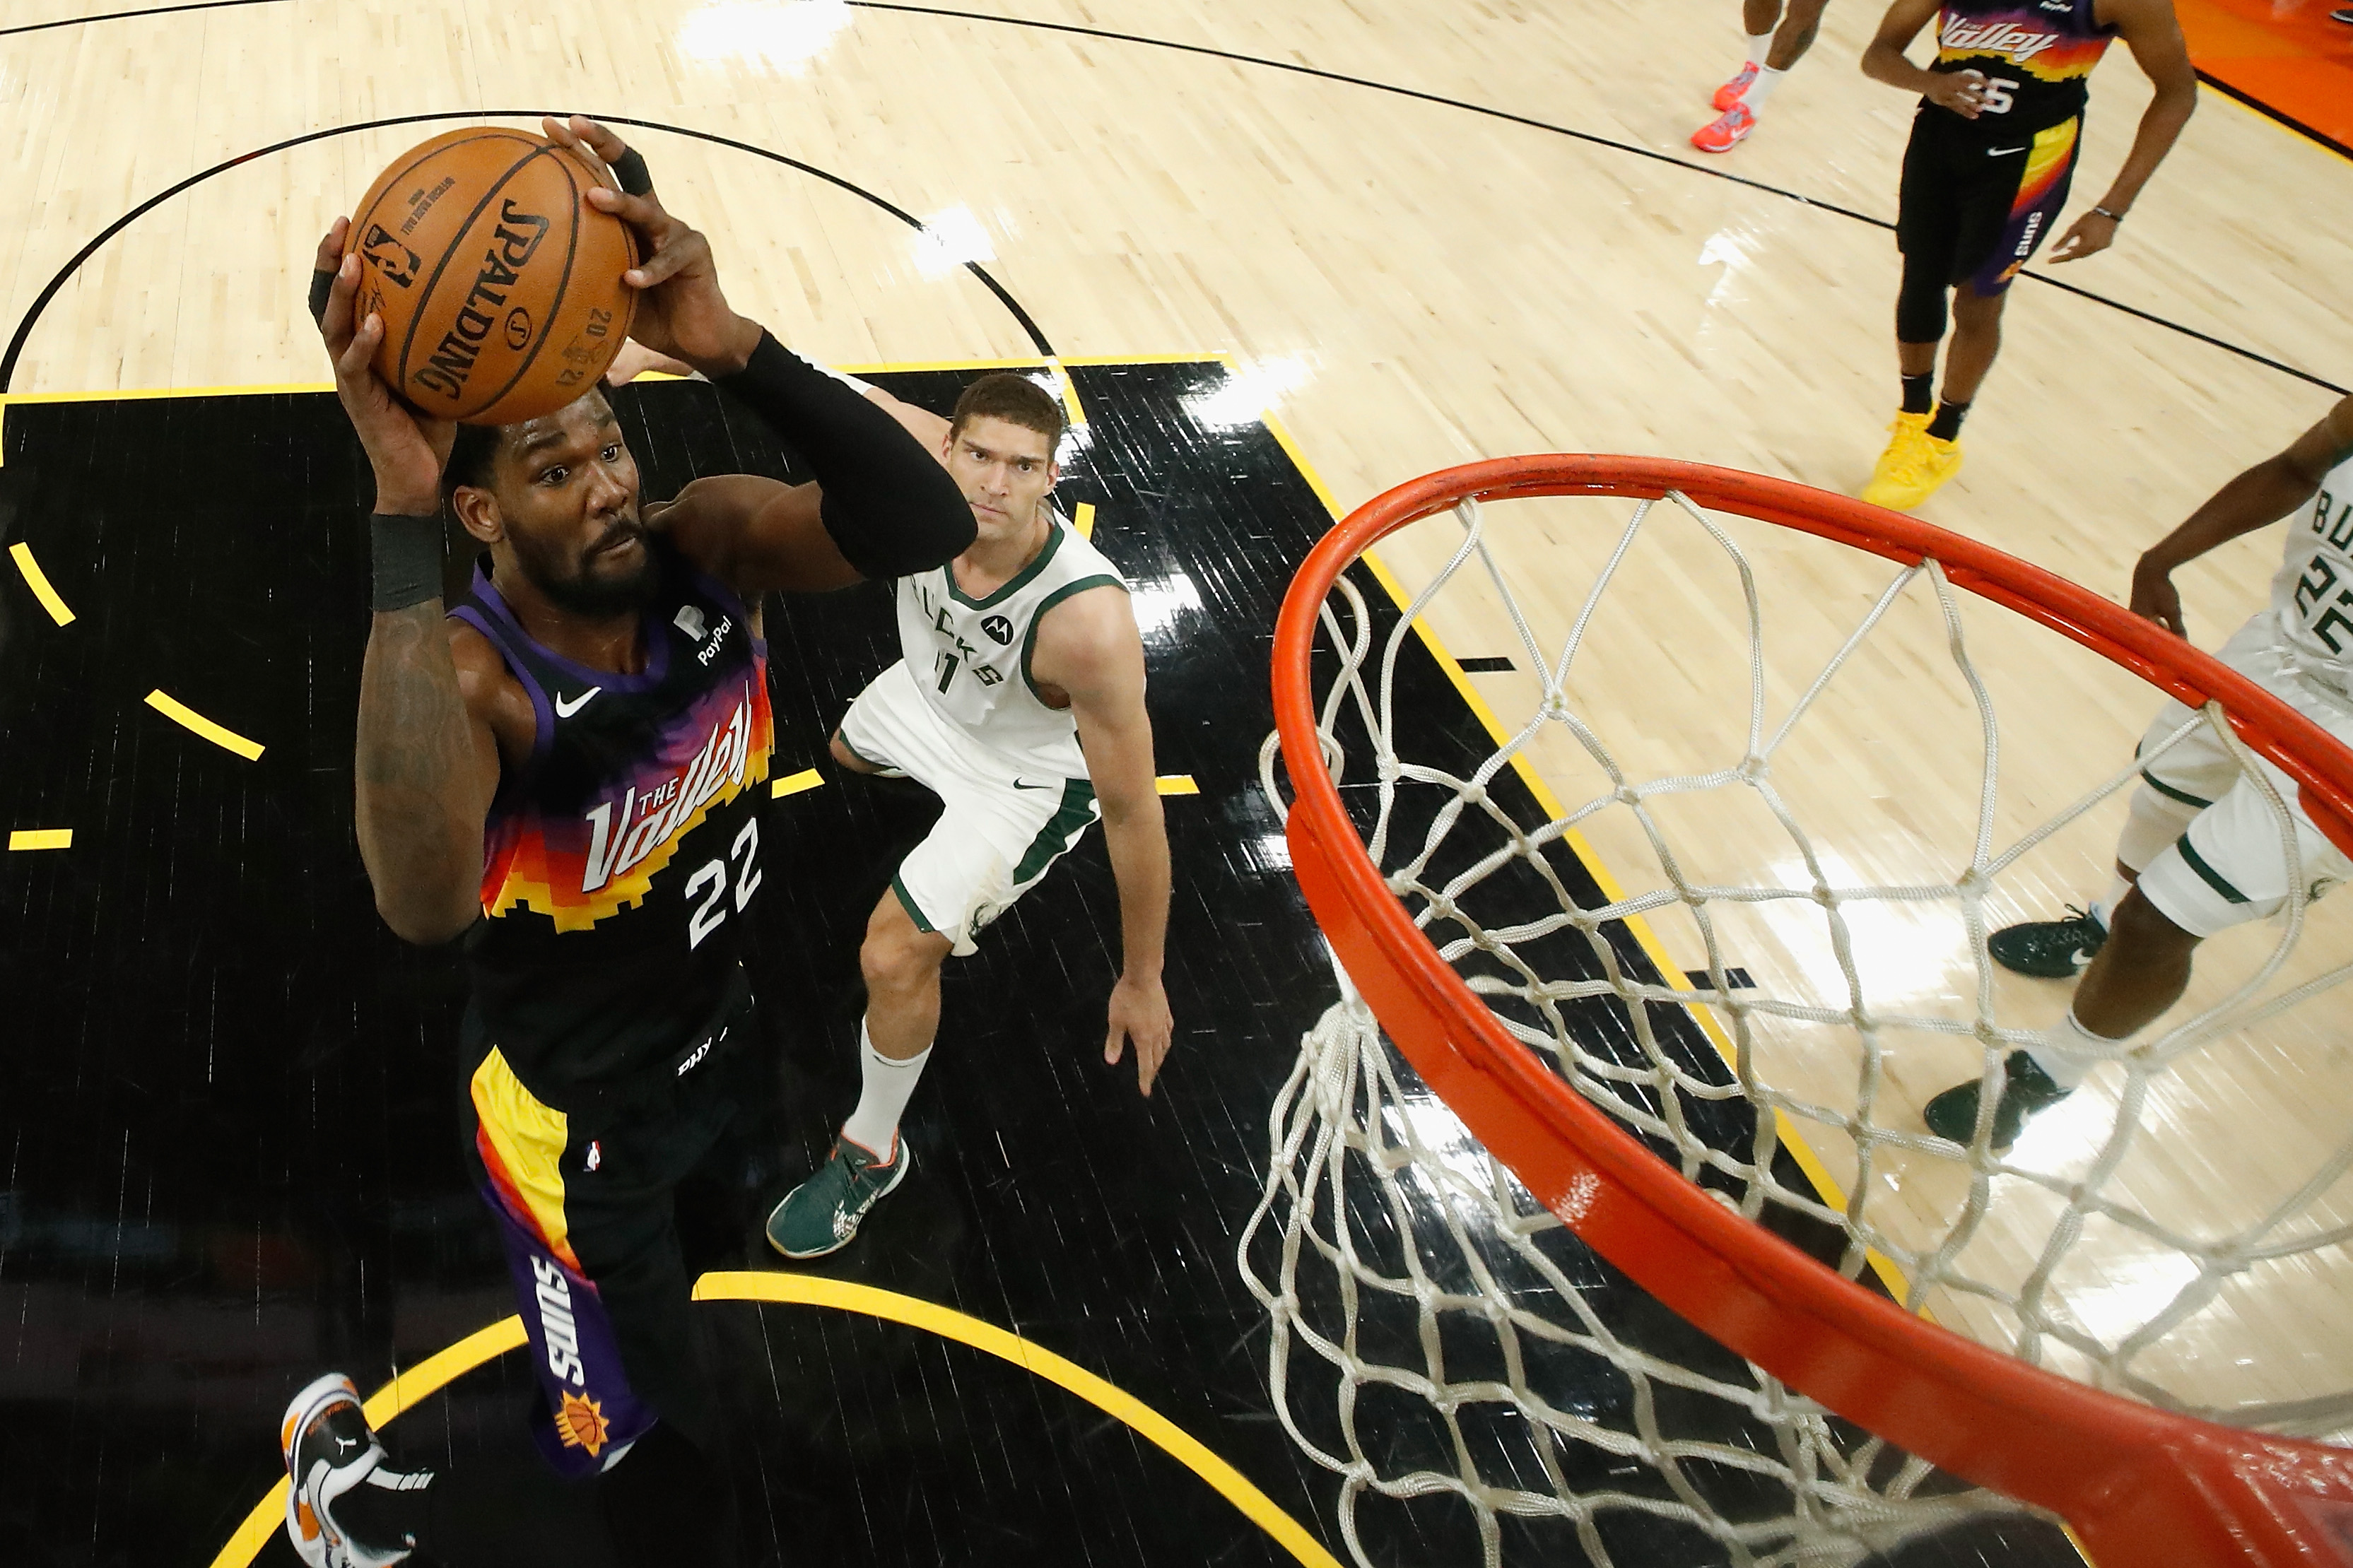 Deandre Ayton of the Phoenix Suns attempts a shot ahead of Brook Lopez of the Milwaukee Bucks during the first half of game one of the NBA Finals at Phoenix Suns Arena on July 06, 2021 in Phoenix, Arizona. The Suns defeated the Bucks 118-105.